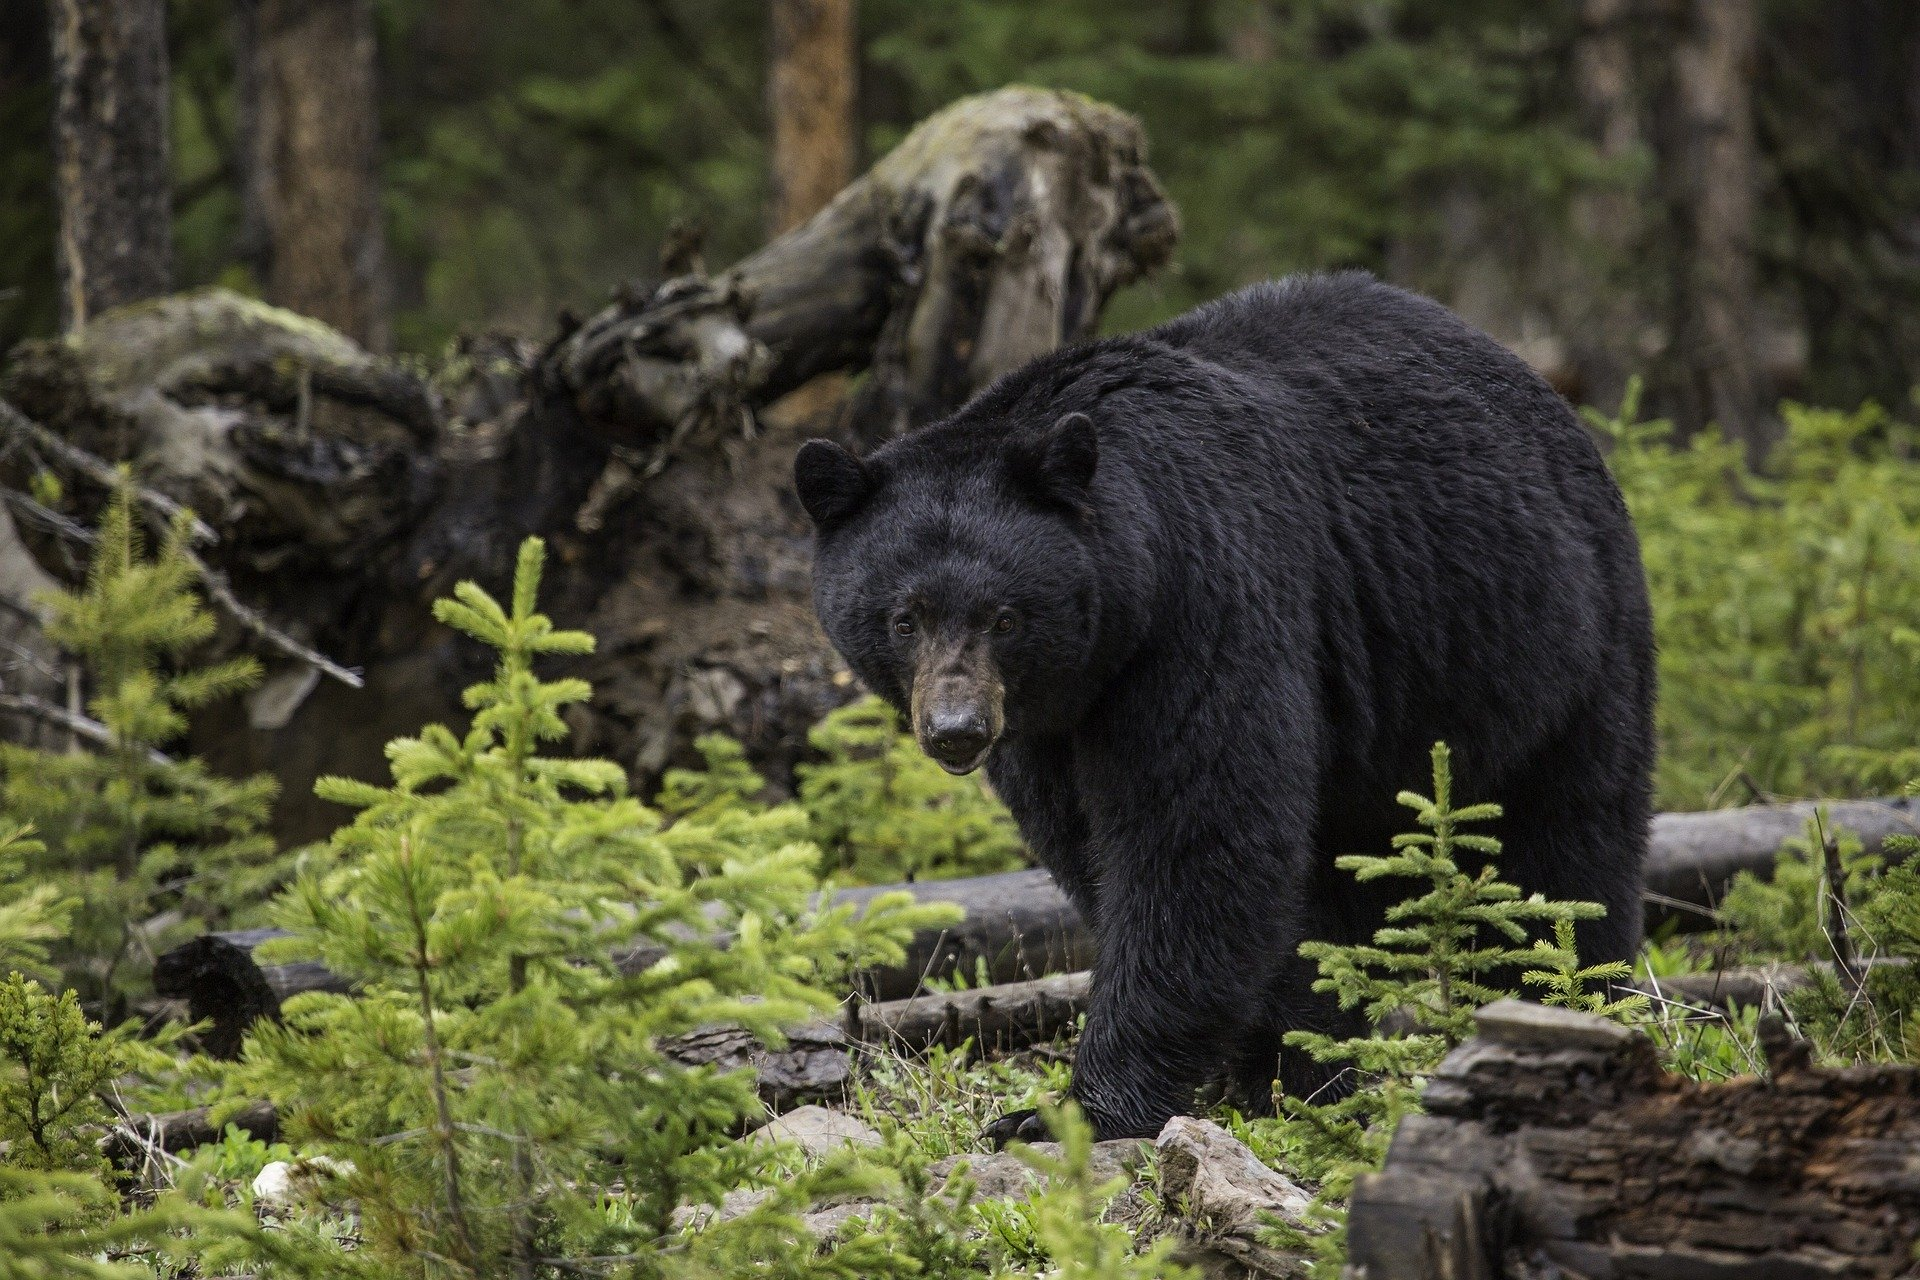 Permanent spring black bear hunt would orphan cubs, animal rights advocates warn